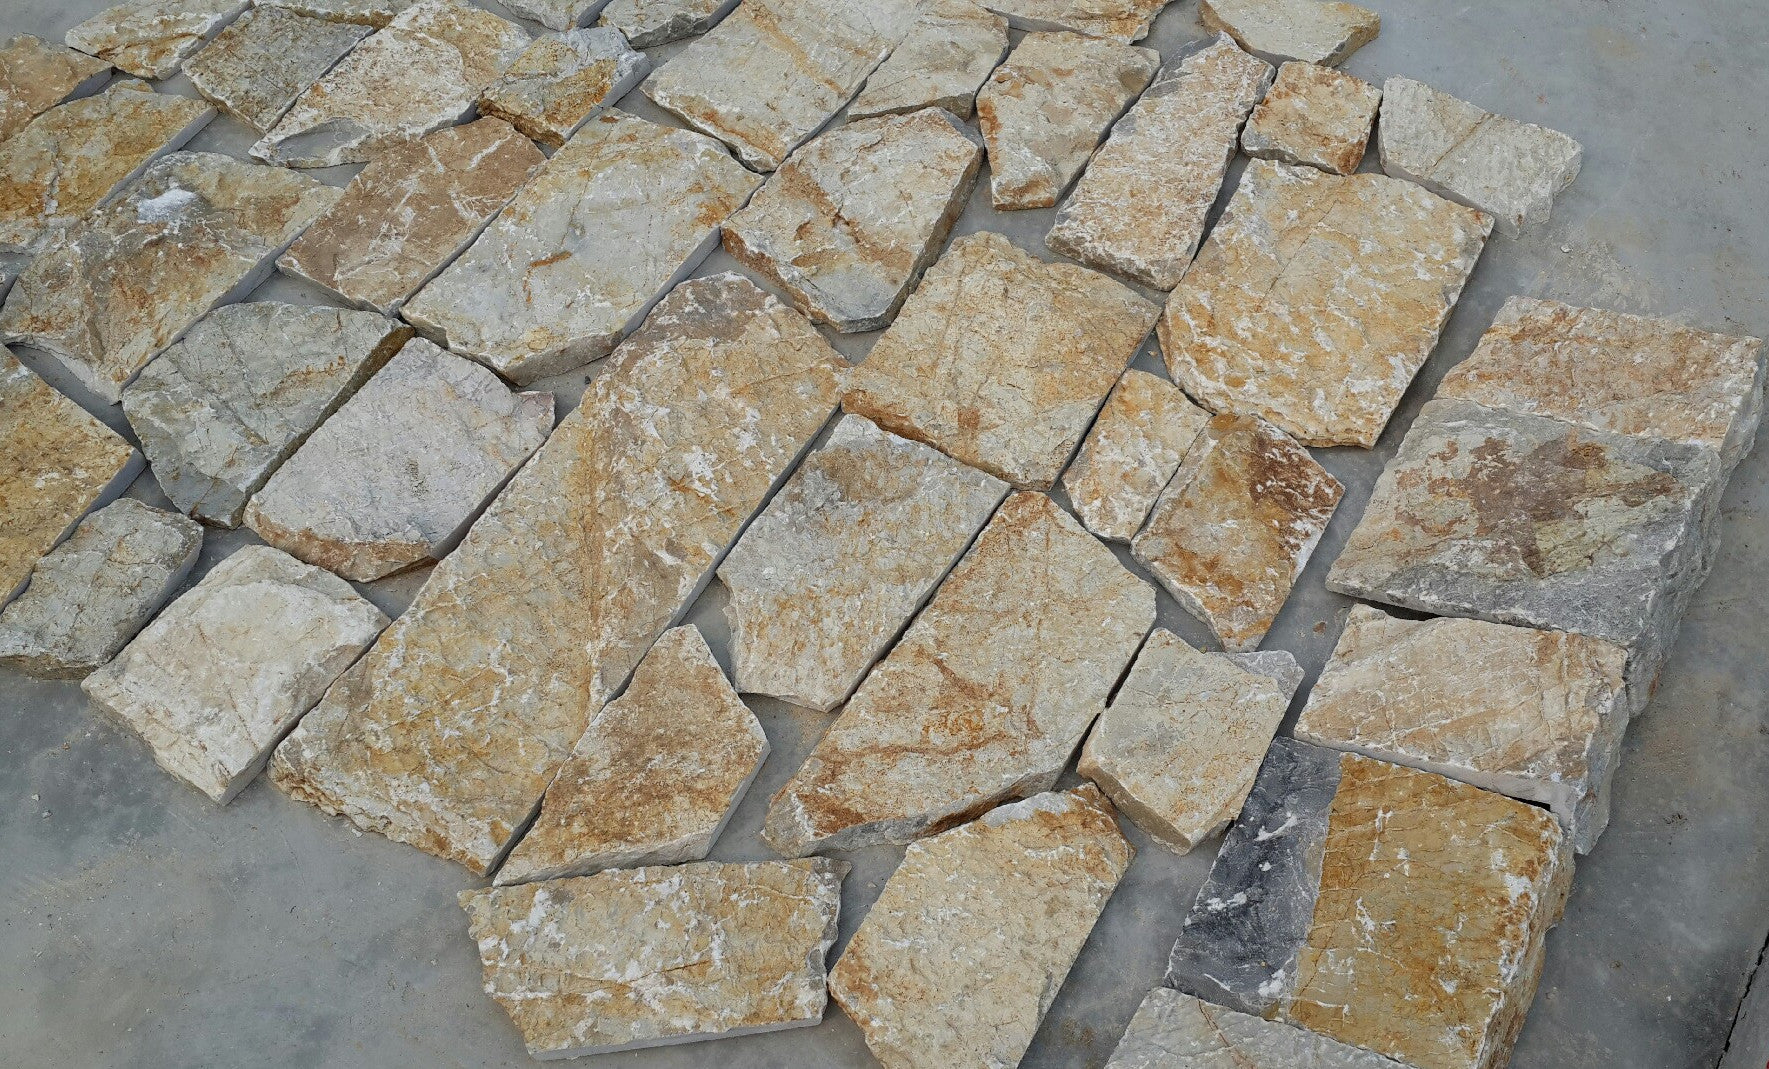 Outlaw - Rough Cut Slate cheap stone veneer clearance - Discount Stones wholesale stone veneer, cheap brick veneer, cultured stone for sale